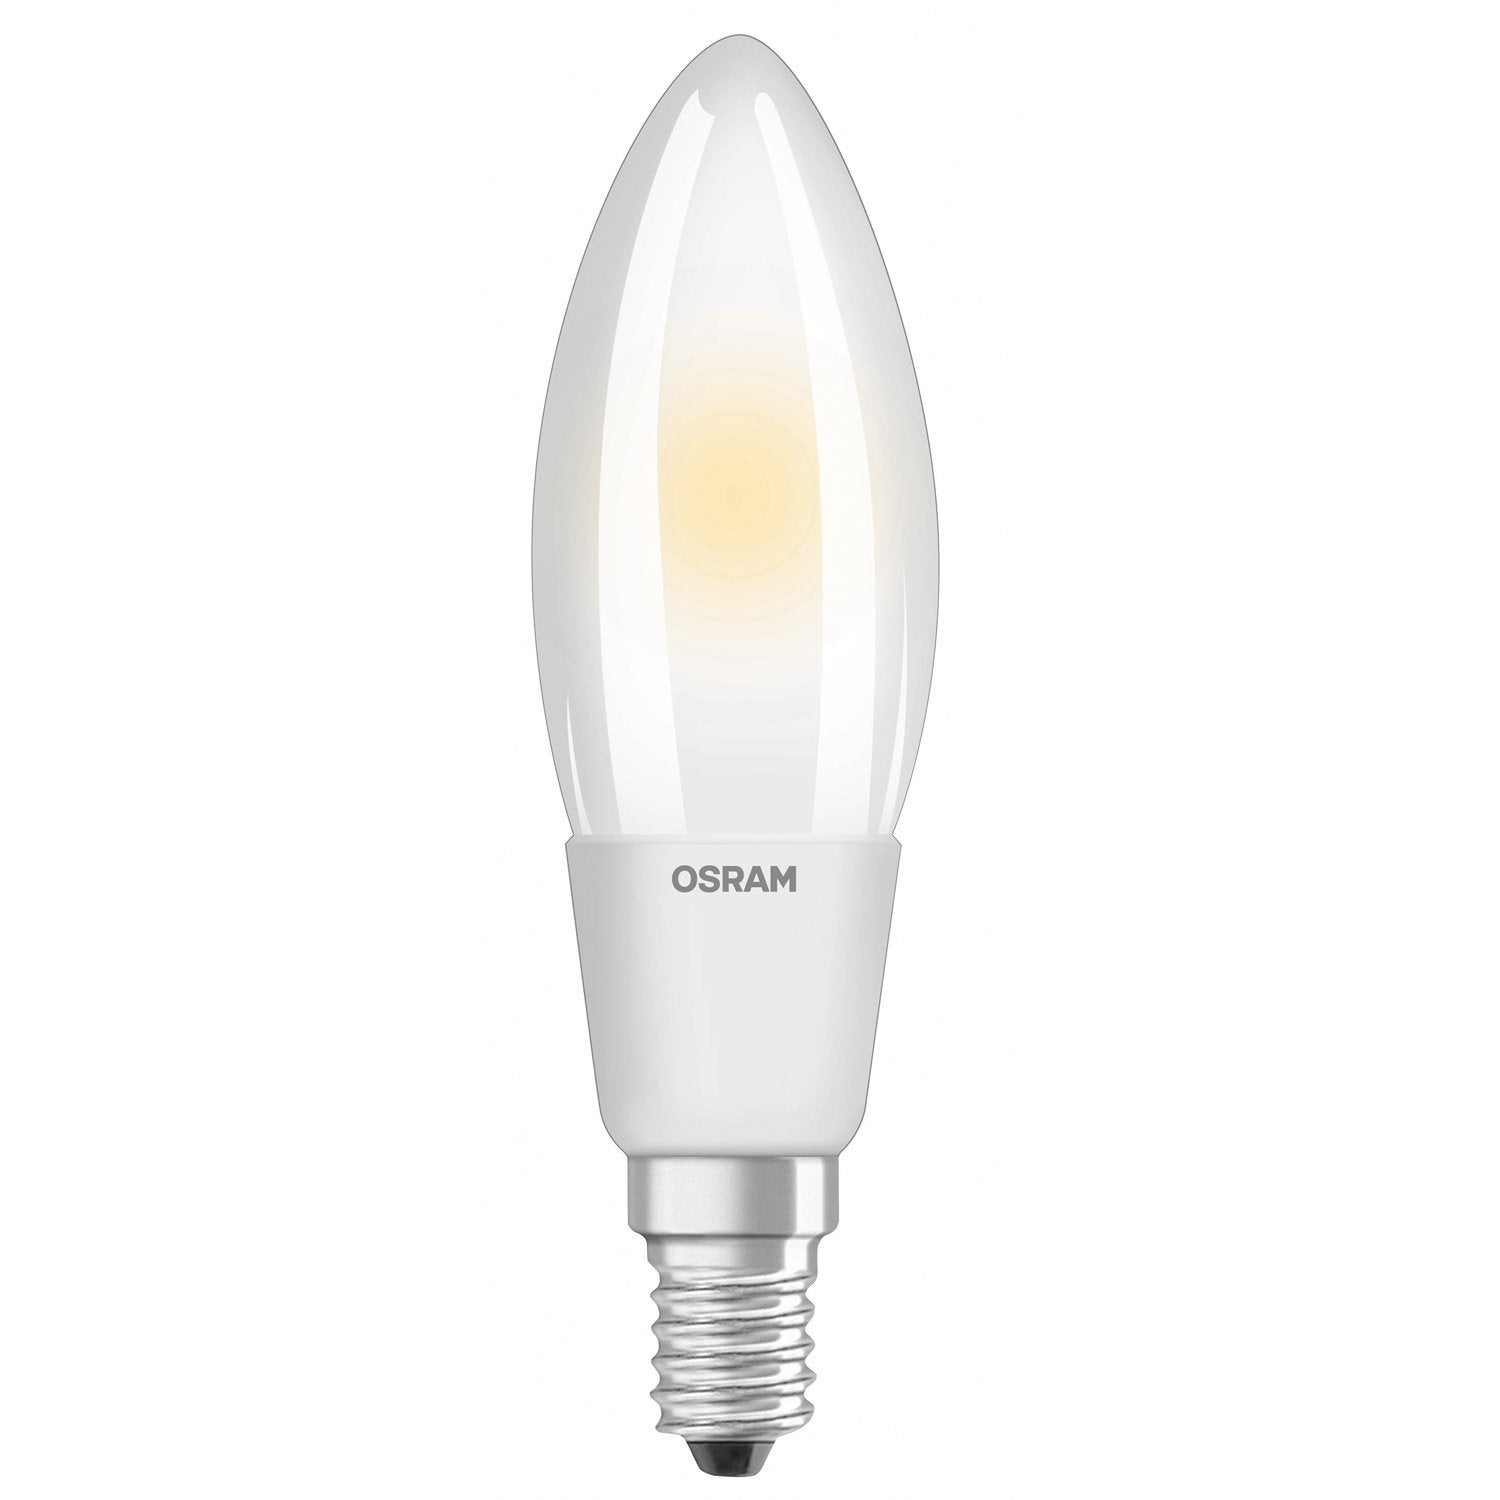 Ampoule led dimmable flamme e14 5w 470lm quiv 40w 2700k 300 osram leroy merlin - Ampoule led e14 leroy merlin ...